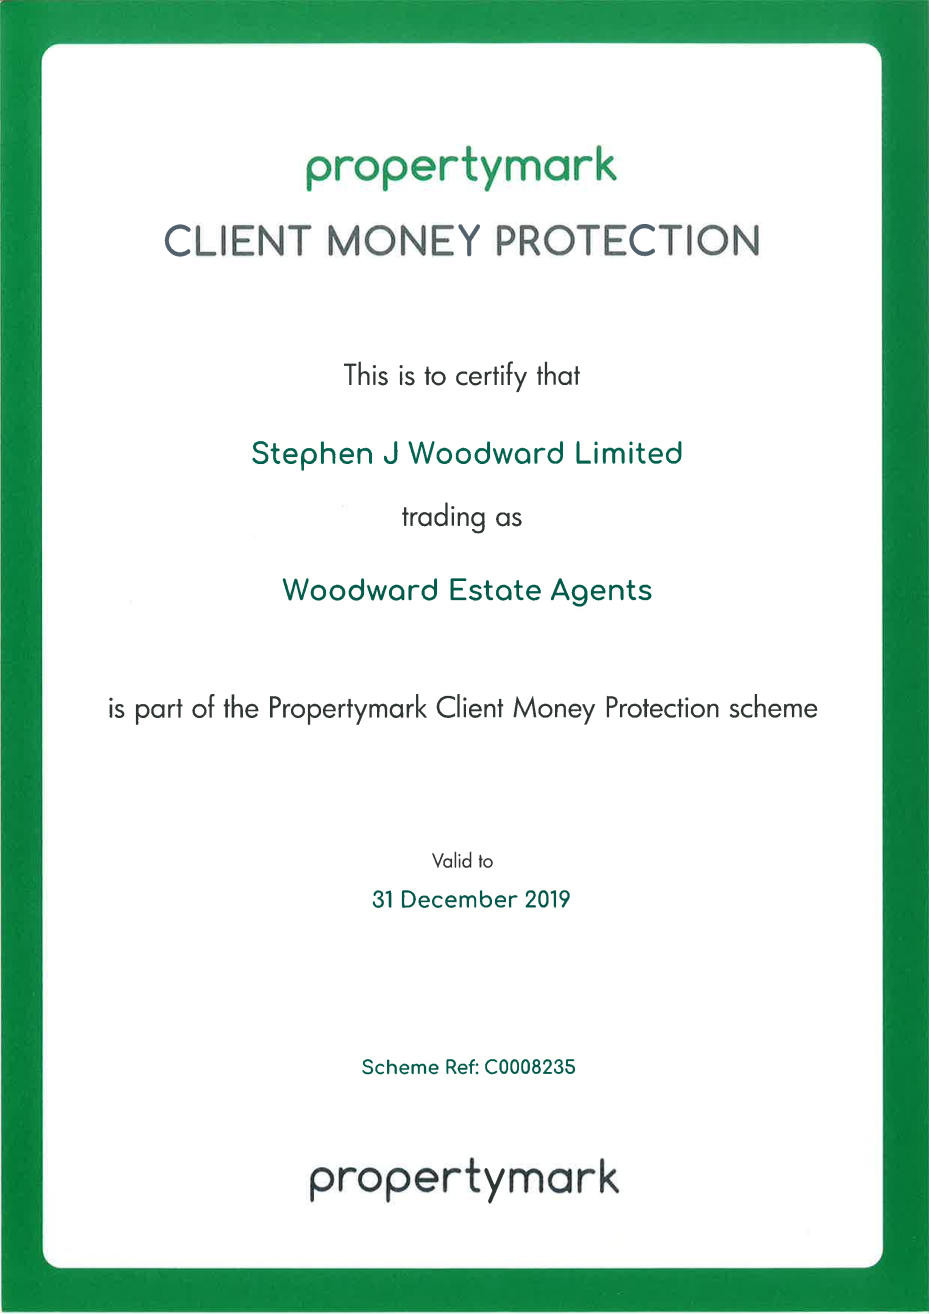 ARLA Client Money Protection Certificate 2019